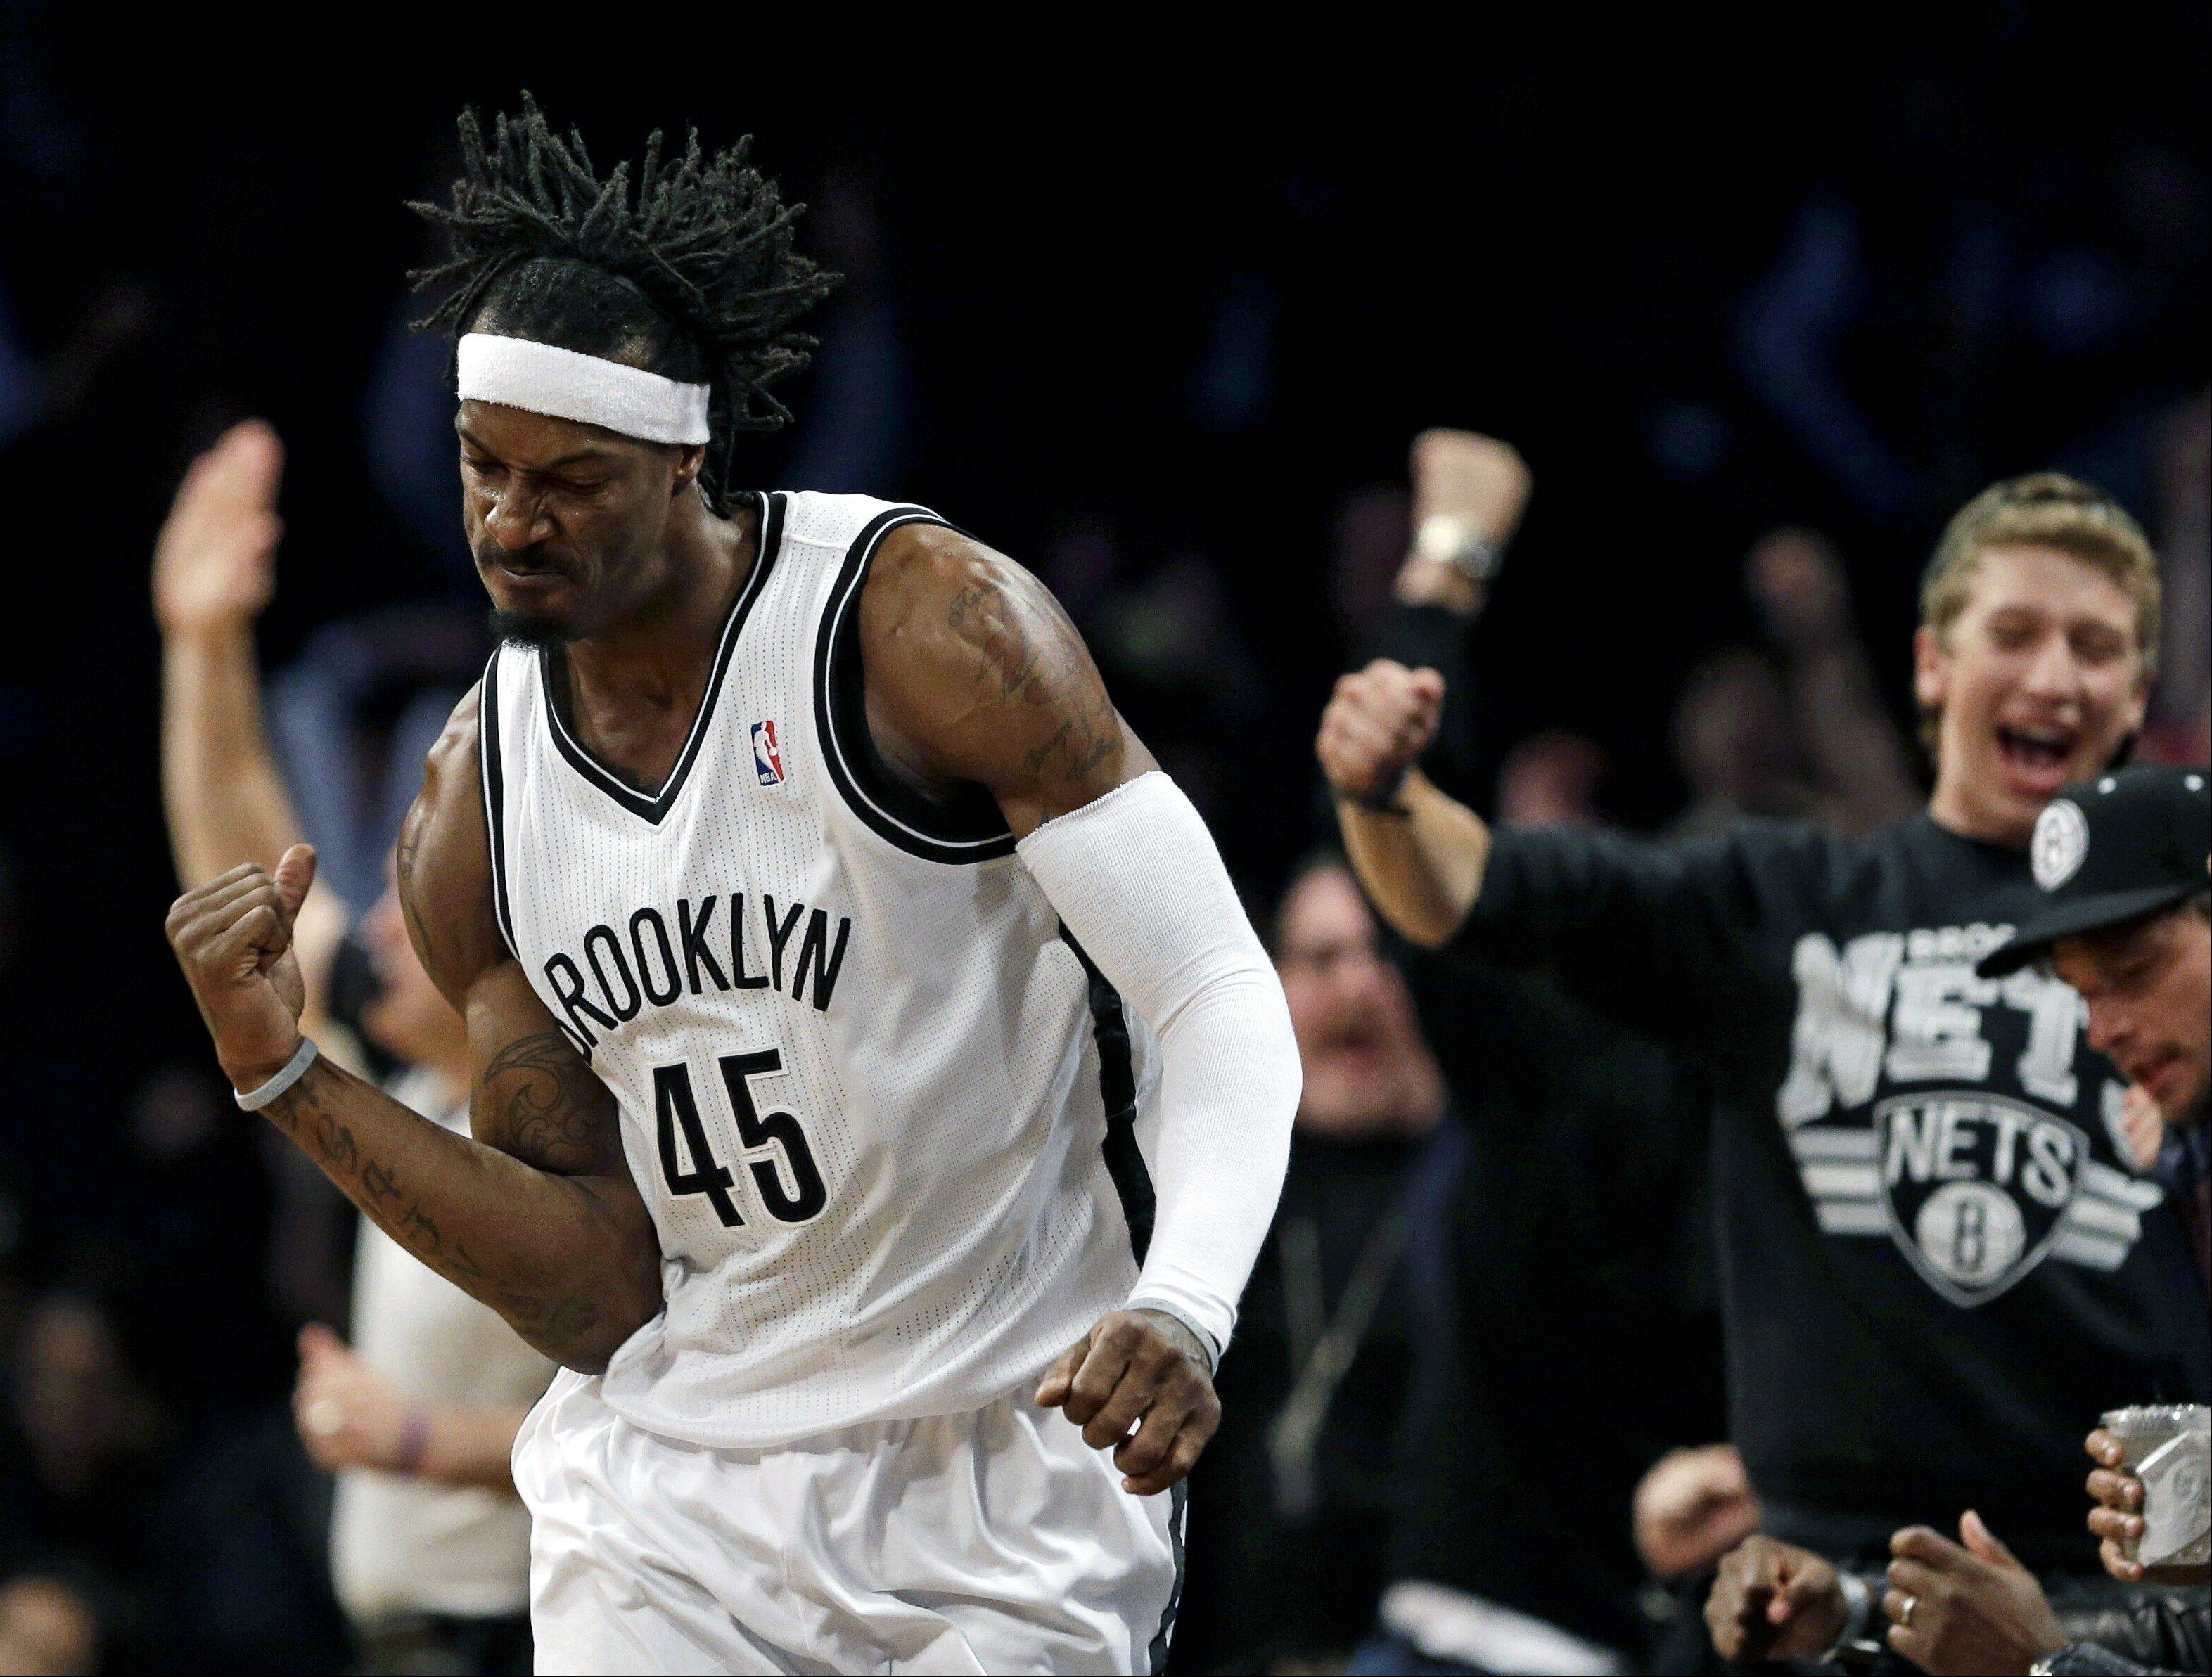 Associated Press Brooklyn Nets' Gerald Wallace celebrates after sinking a 3-point shot against the Chicago Bulls during the second half in Game 7 of their first-round NBA basketball playoff series in New York, Saturday, May 4, 2013.